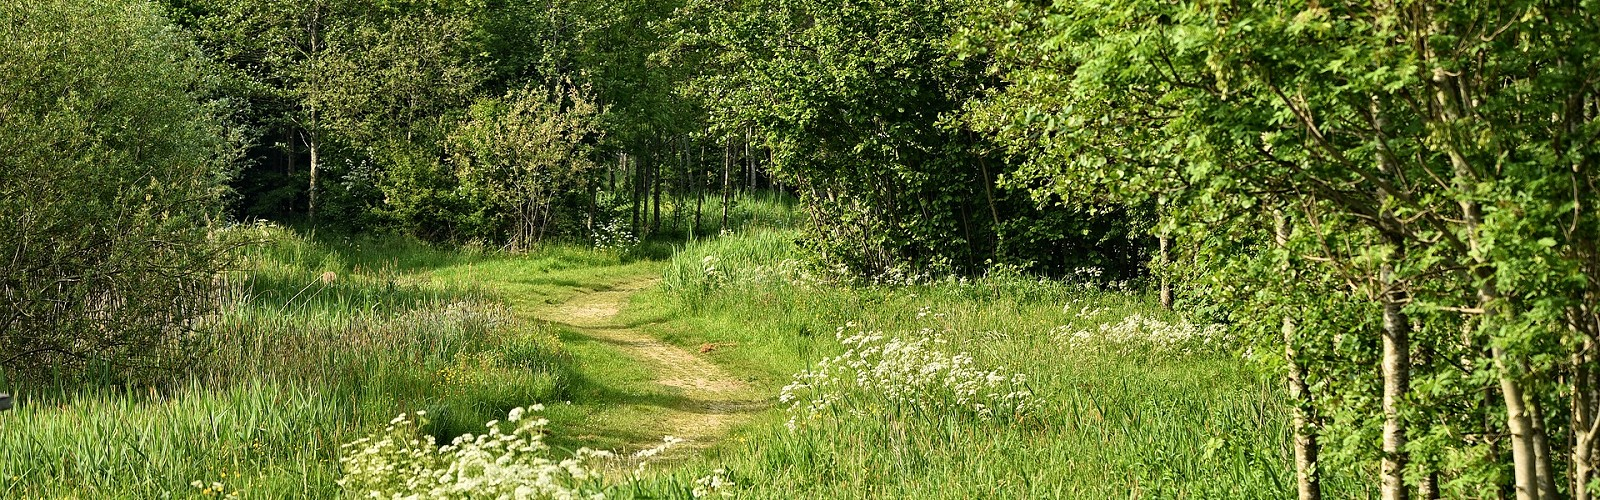 path winding through grassland bordered by woodland